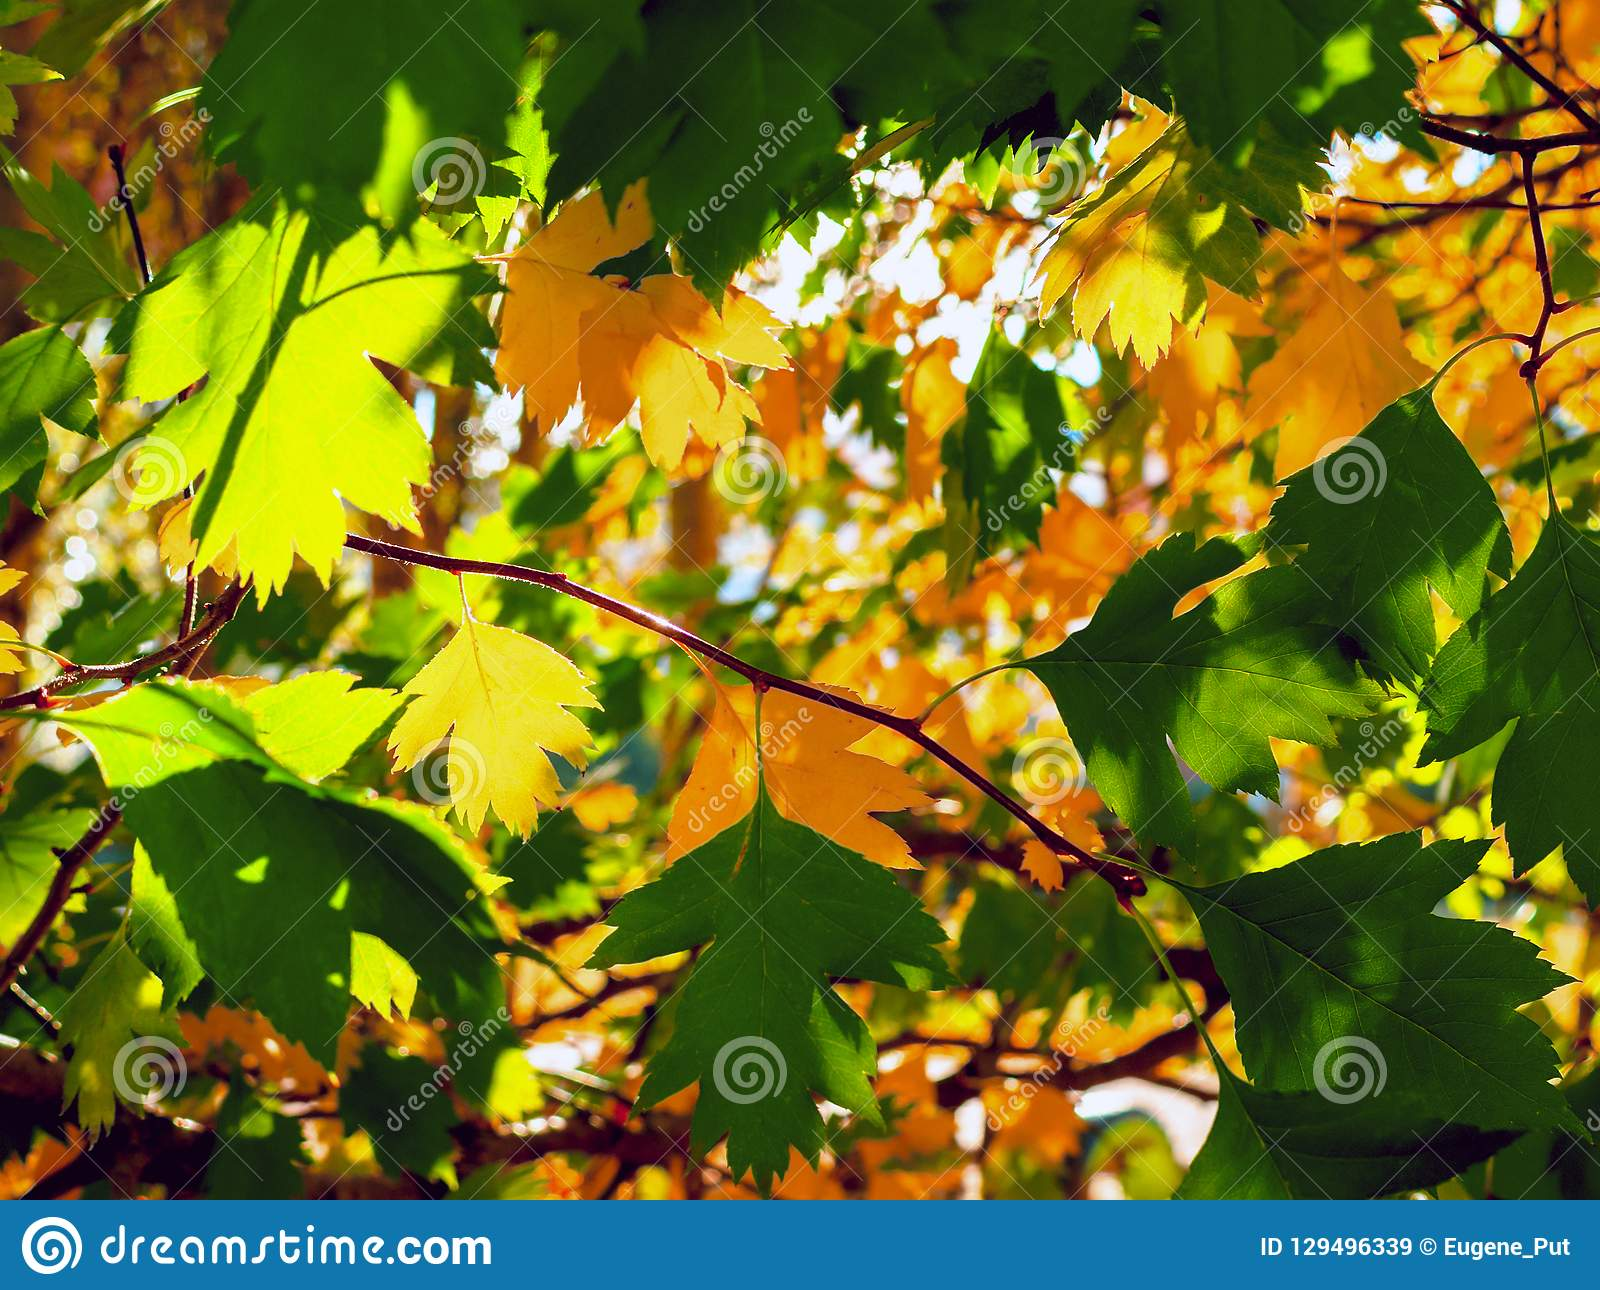 Yellow And Green Leaves Lit By The Sun Rays. Colorful Background. Autumn Golden Foliage